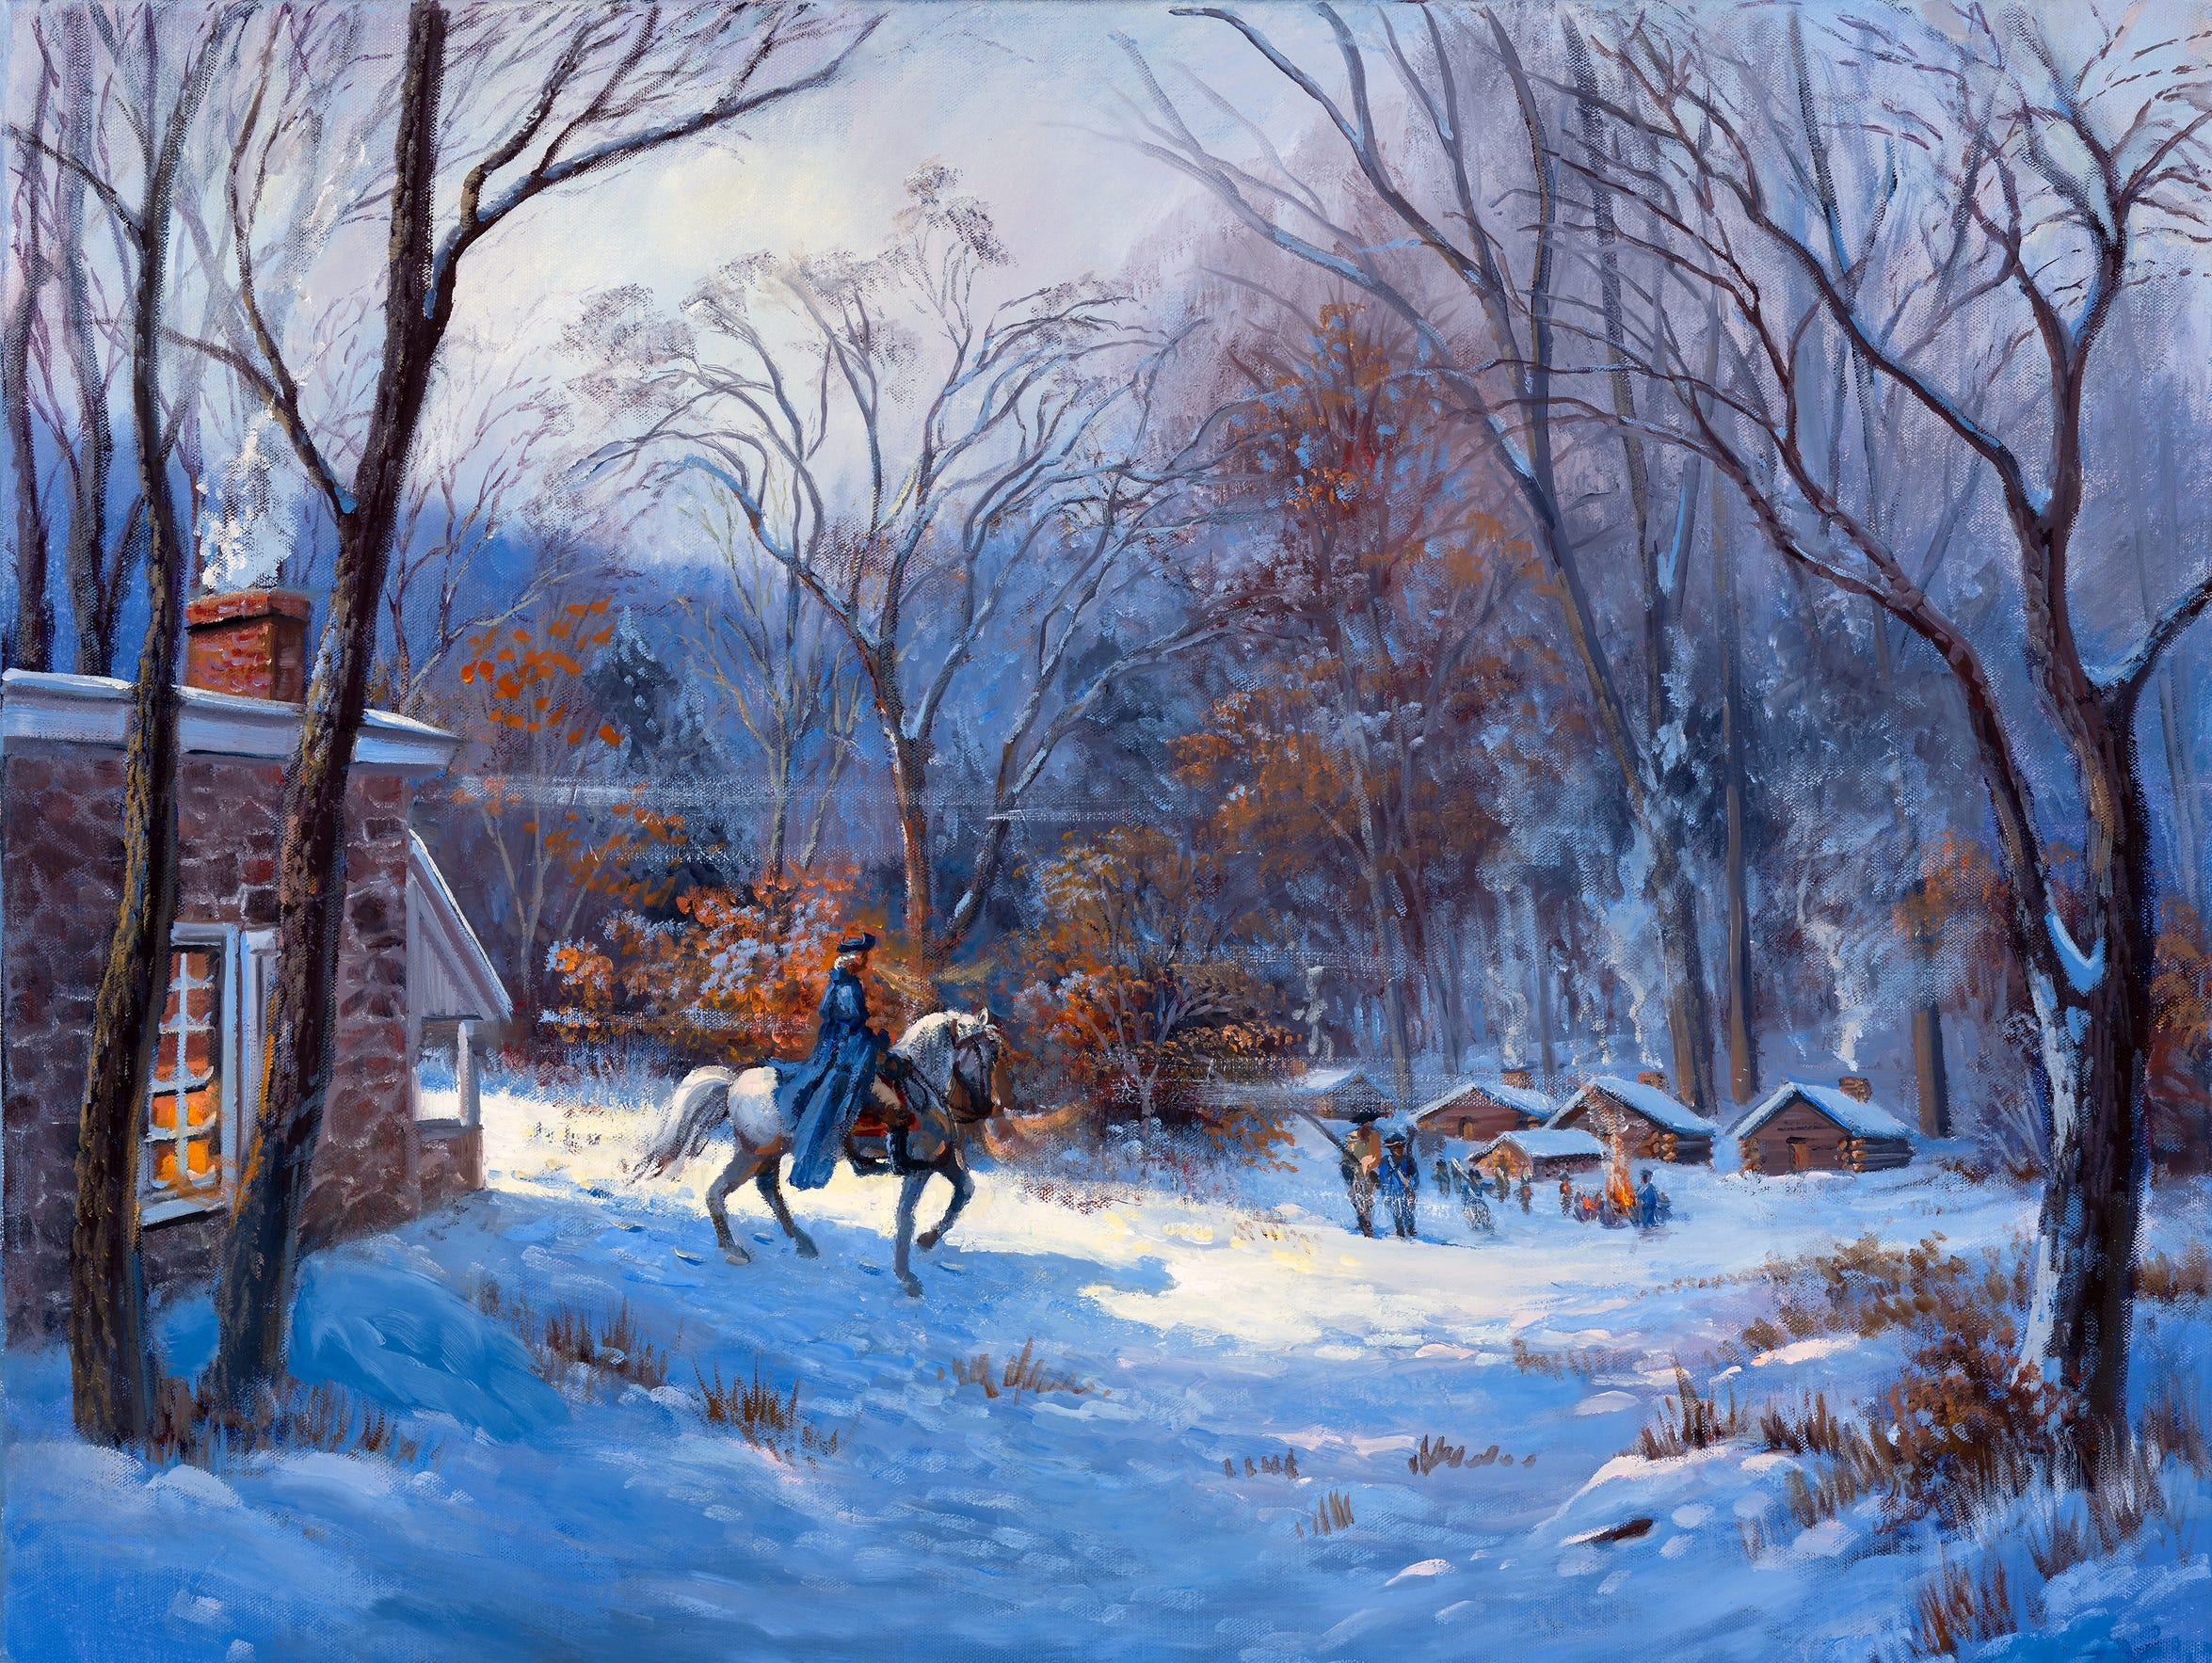 Gen. George Washington endured a harsh winter at Valley